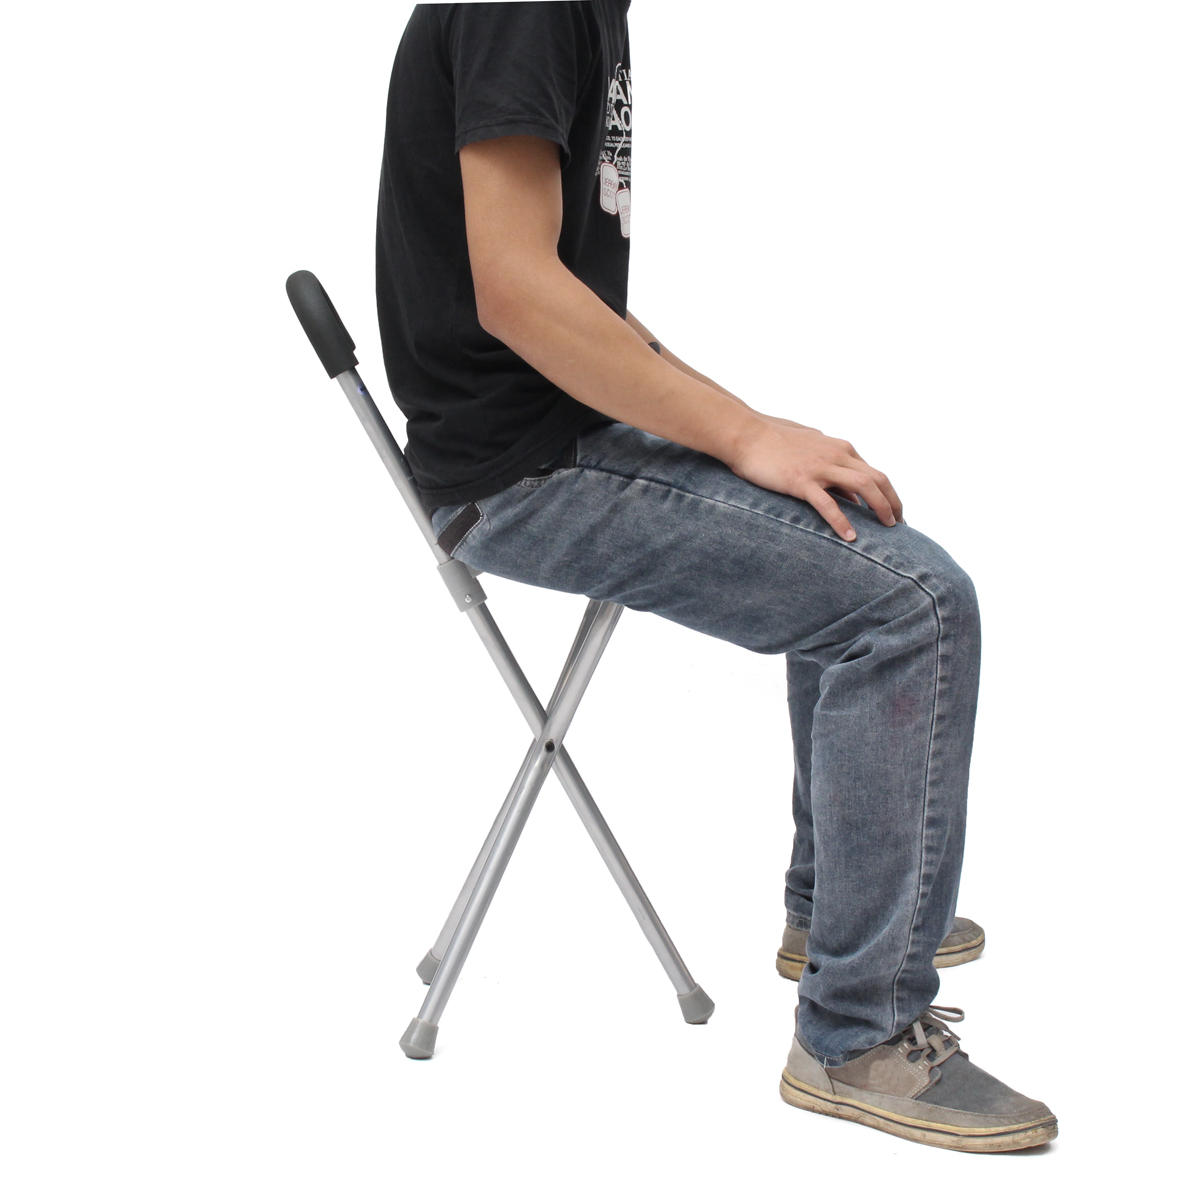 Walking Chair Ipree Outdoor Travel Folding Stool Chair Portable Tripod